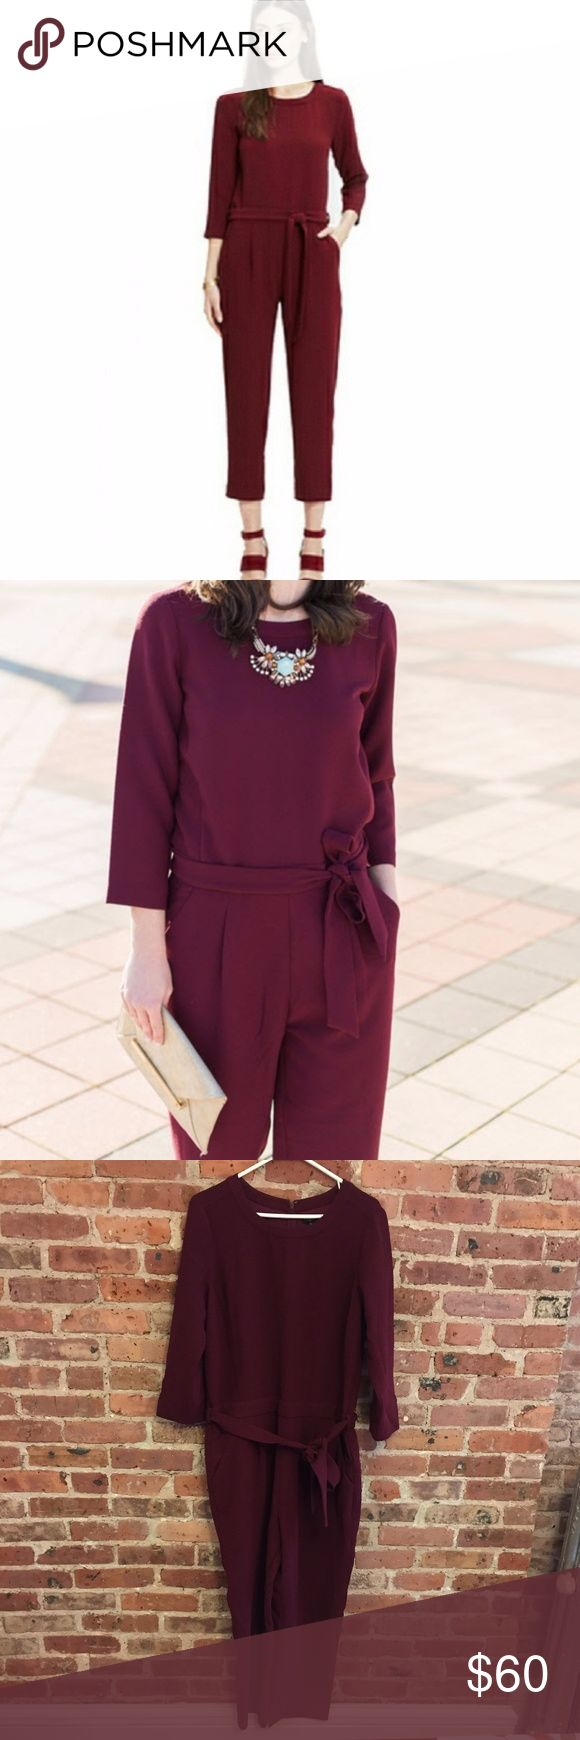 Madewell Sloan Jumpsuit Cranberry Wine 10 Madewell 'Sloan' jumpsuit in a cranberry/wine/burgundy color. Cropped length in a textured crepe fabric with removable tie sash at waist. Easy, relaxed fit. 100% polyester. Size 10. Excellent condition. Madewell Pants Jumpsuits & Rompers